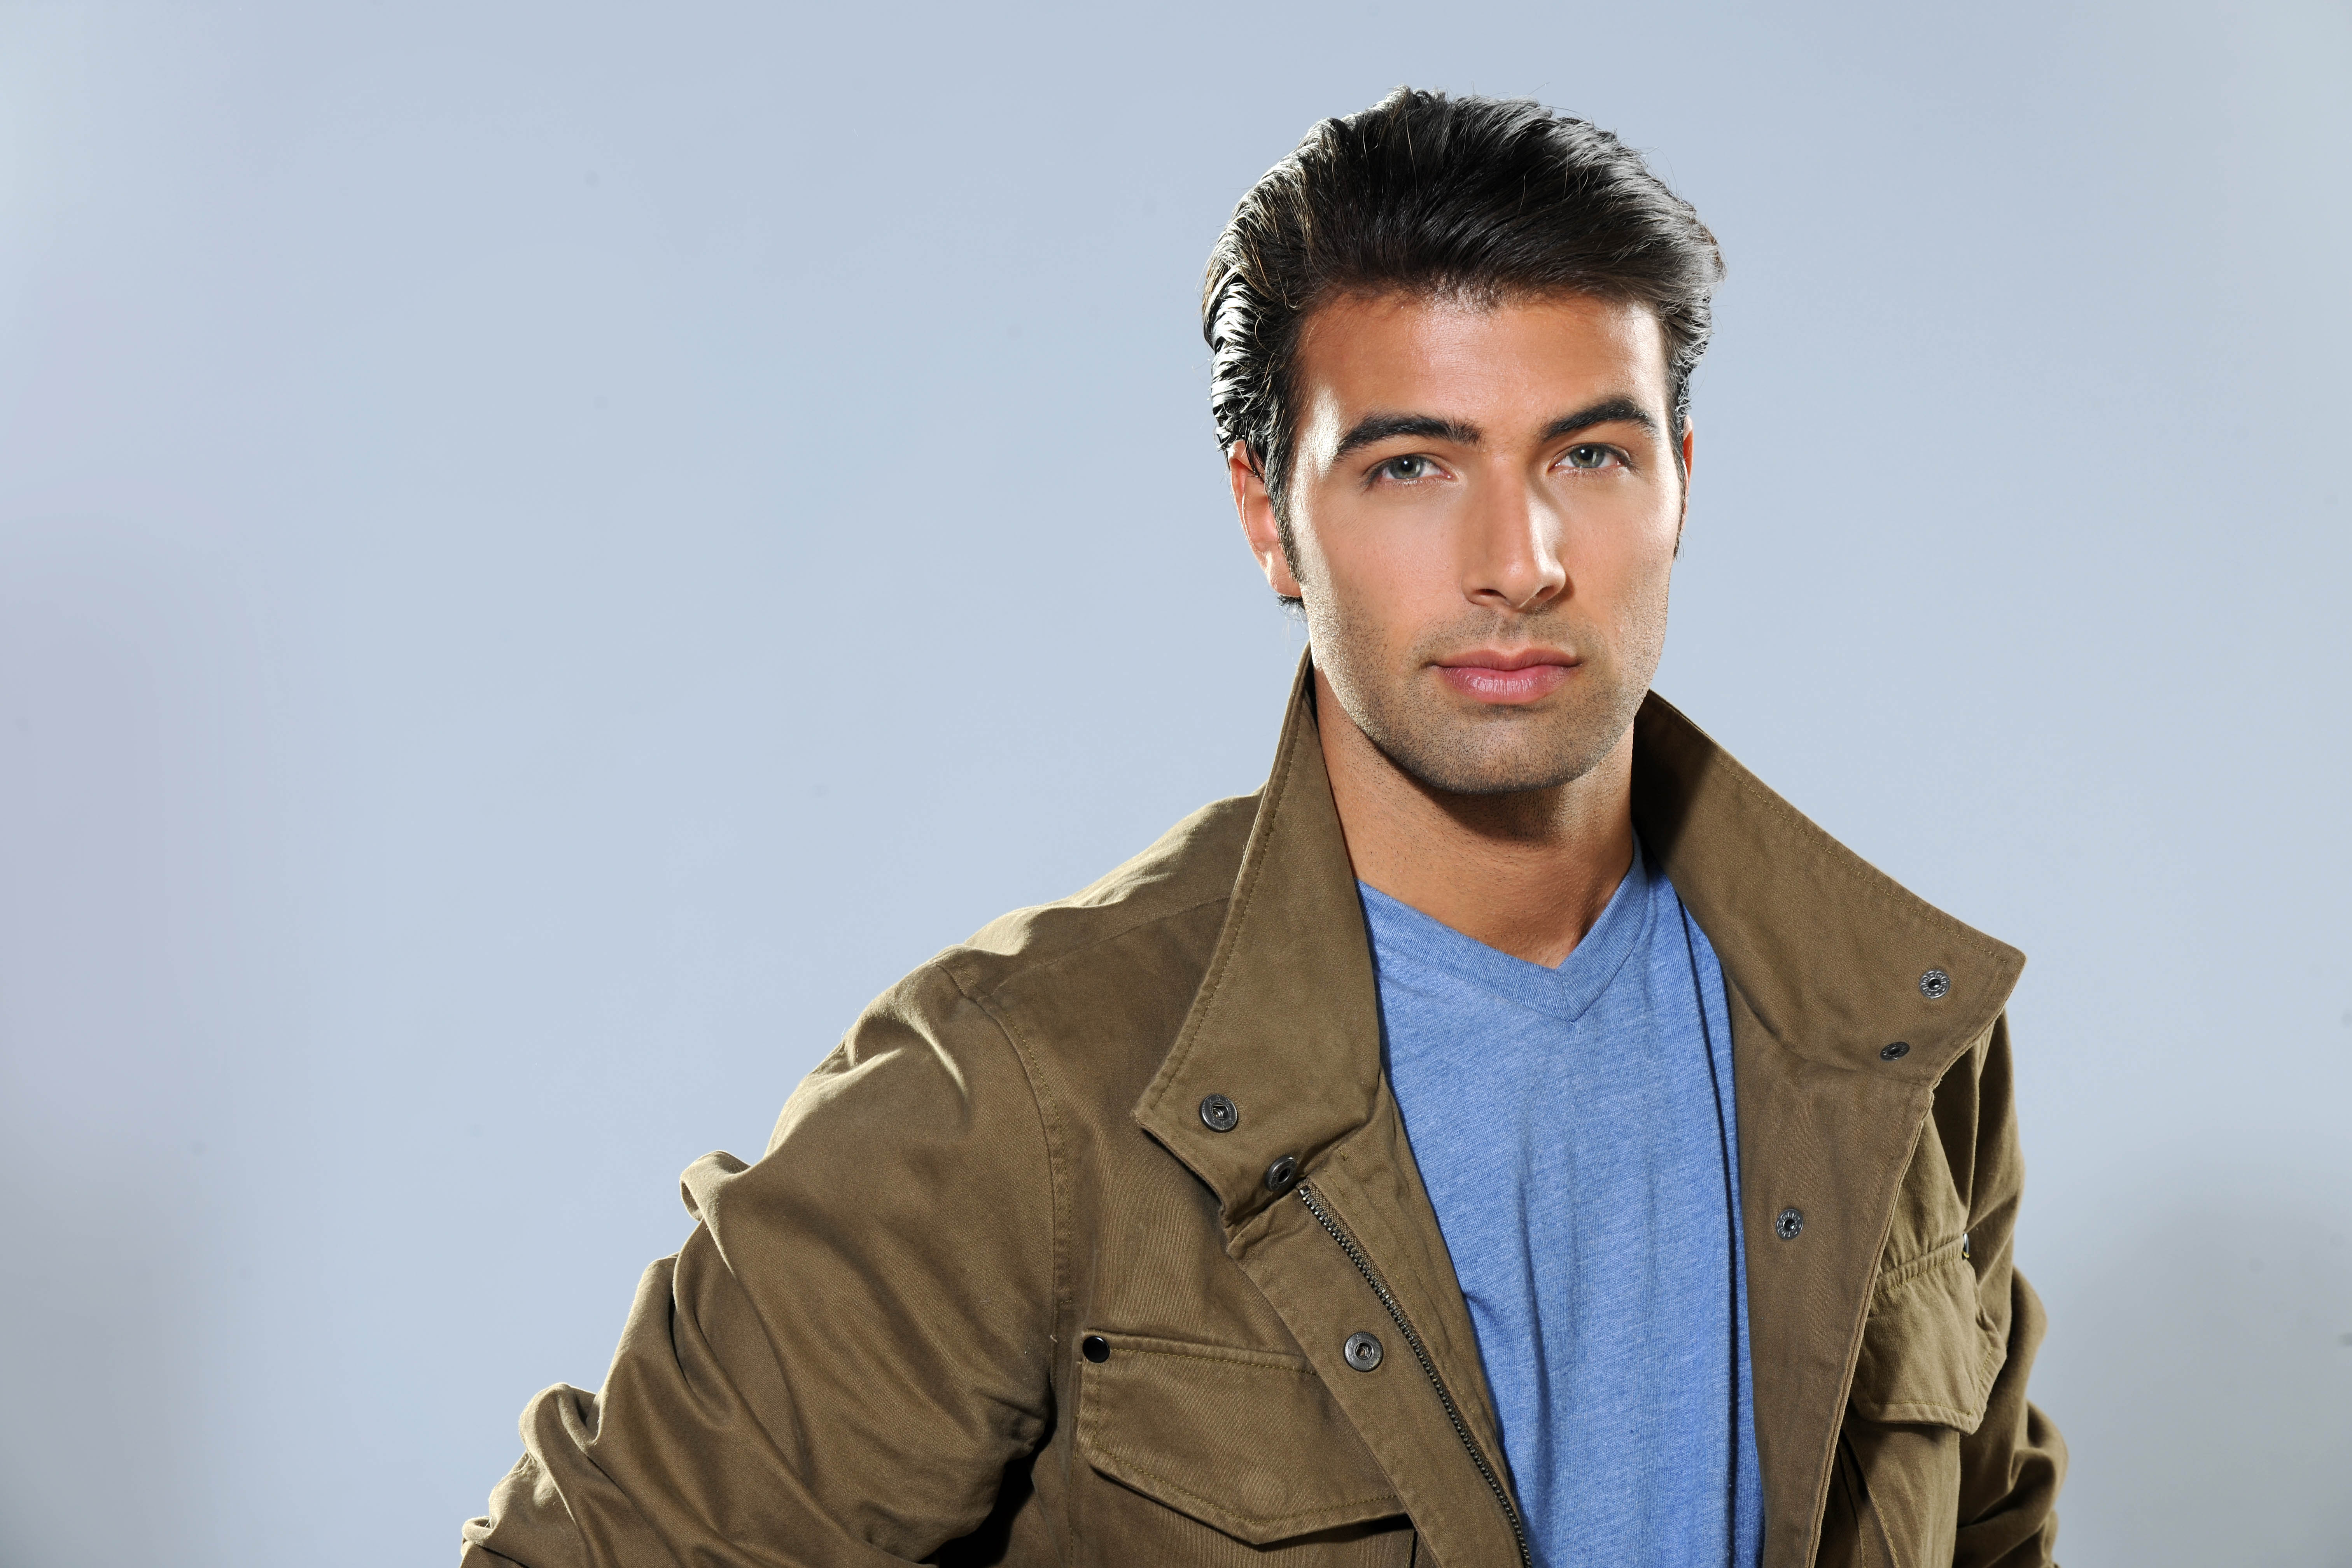 Jencarlos Canela photo, pics, wallpaper - photo #